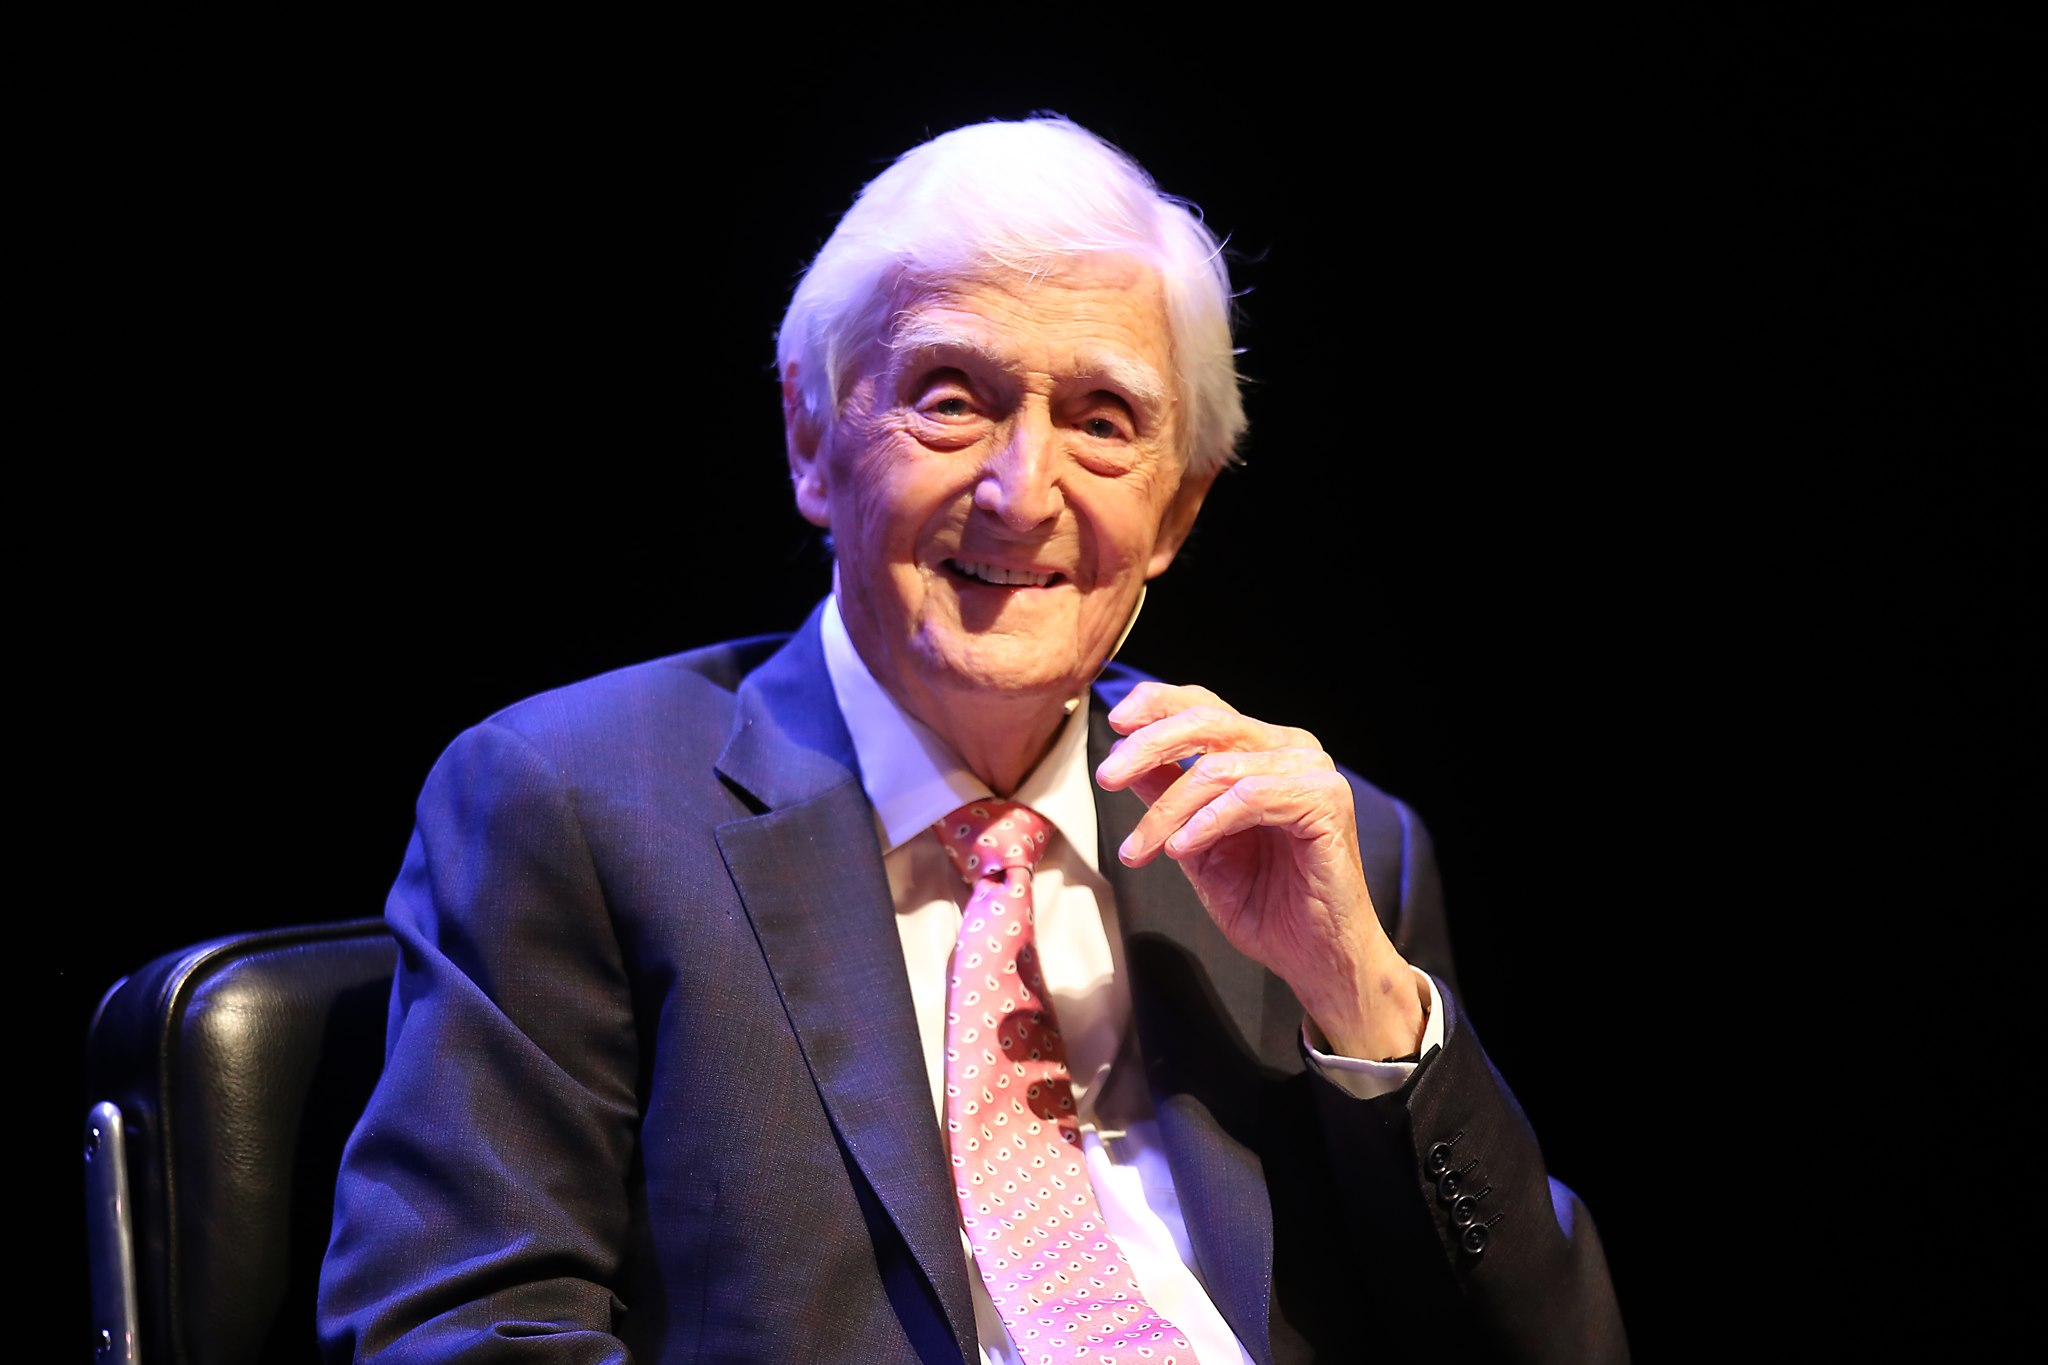 Sir Michael Parkinson at the Whitehall Theatre on Saturday.